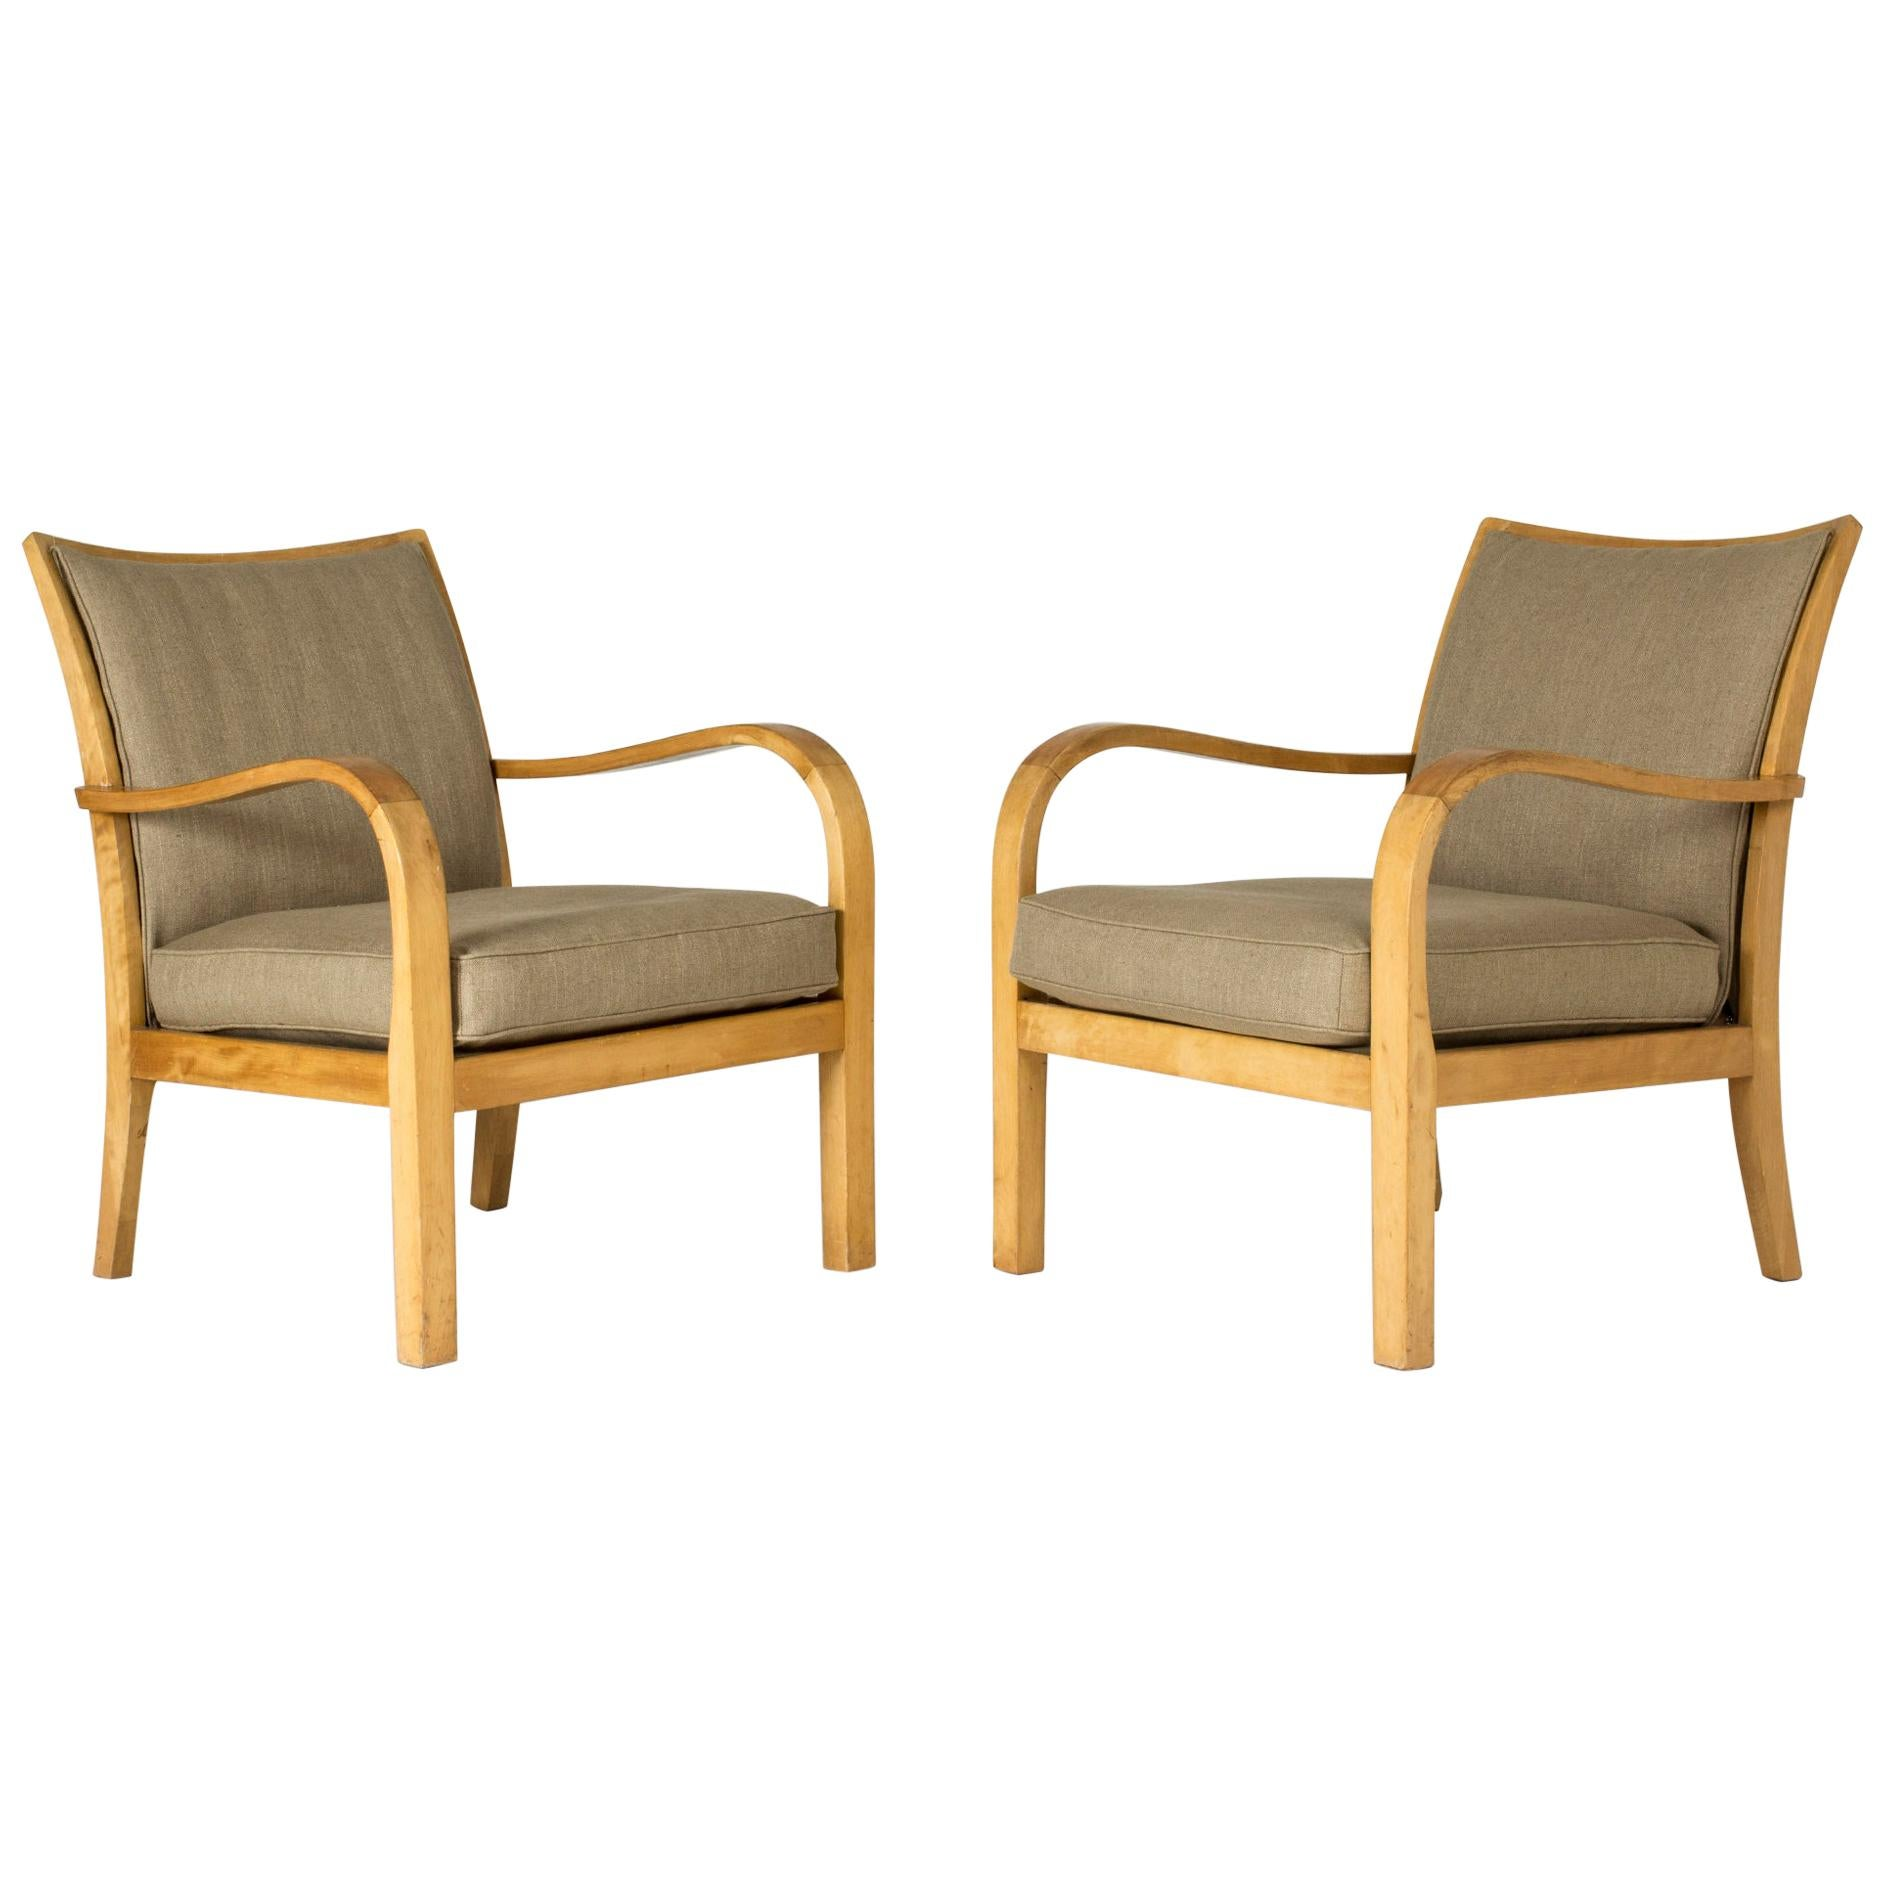 Pair of Functionalist Birch and Linen Lounge Chairs by Axel Larsson for Bodafors